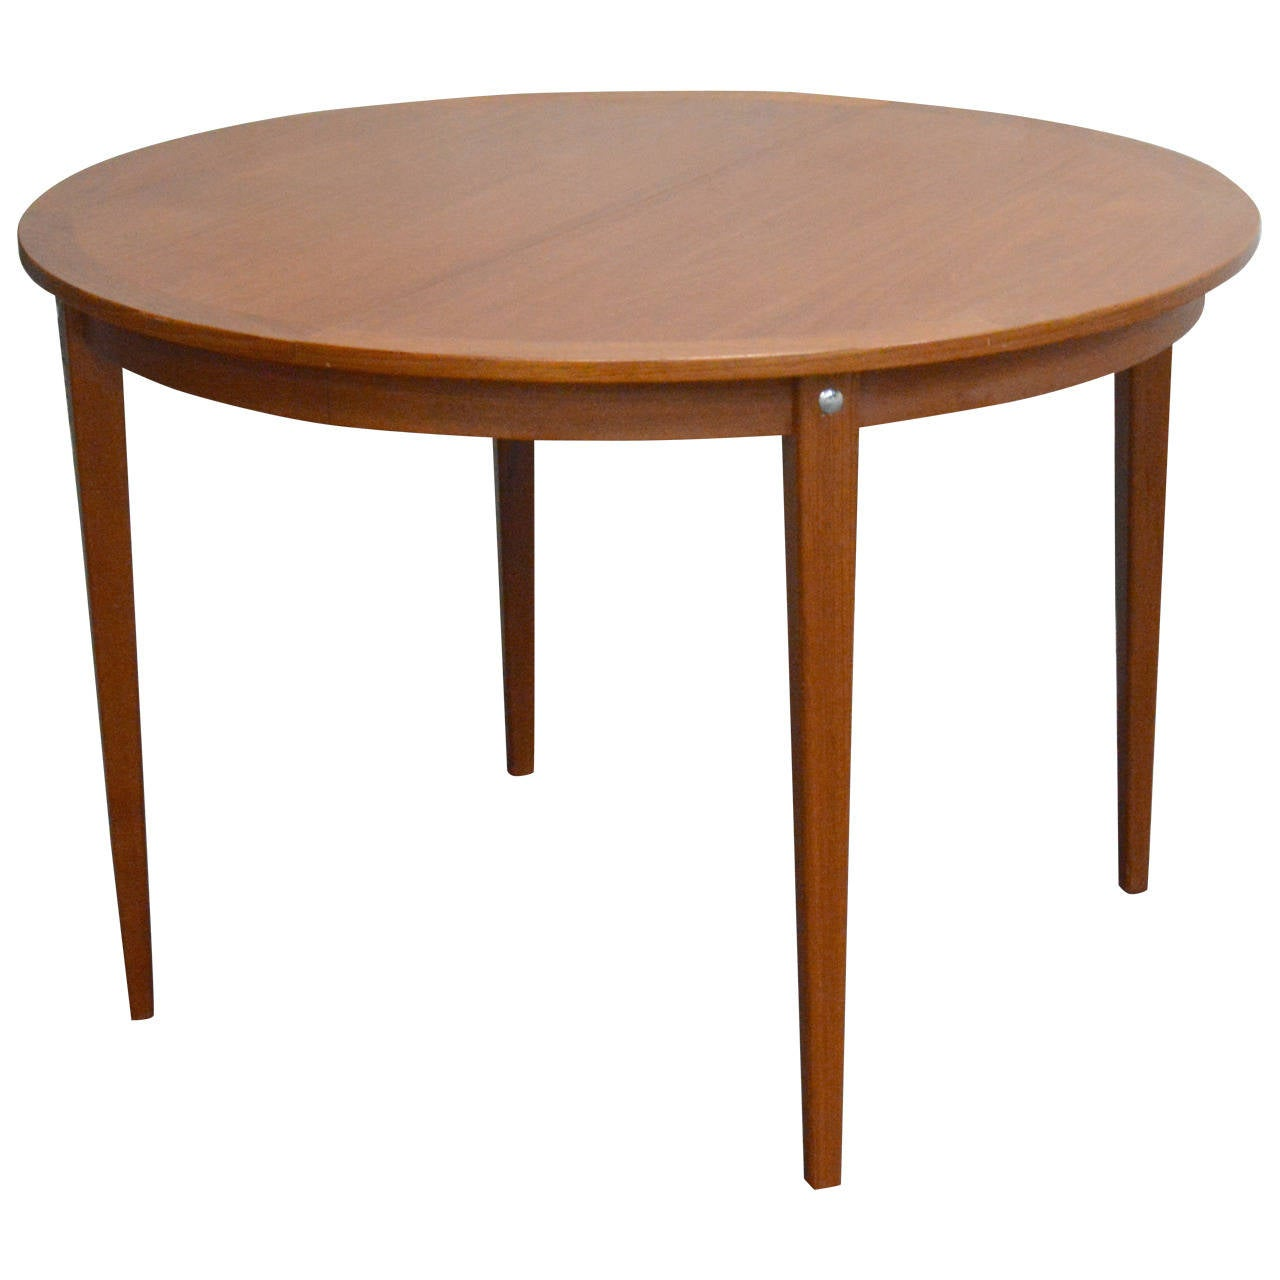 Round Dining Table For 8 With Lazy Susan Images Custom